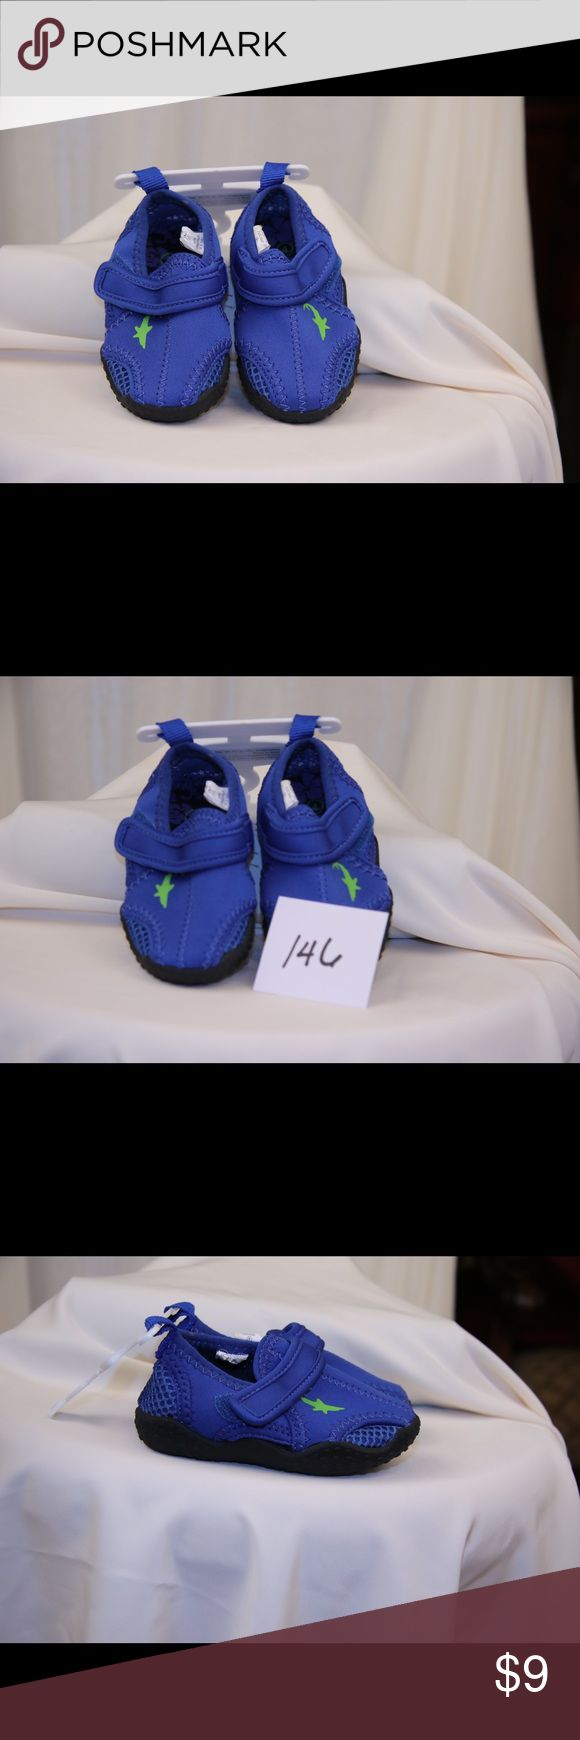 Kids Koala Kids Water shoe pull-on in blue size 4 These Koala Kids water shoes are blue with green accents ,size child's 4. They are NWOT. Koala Kids Shoes Water Shoes